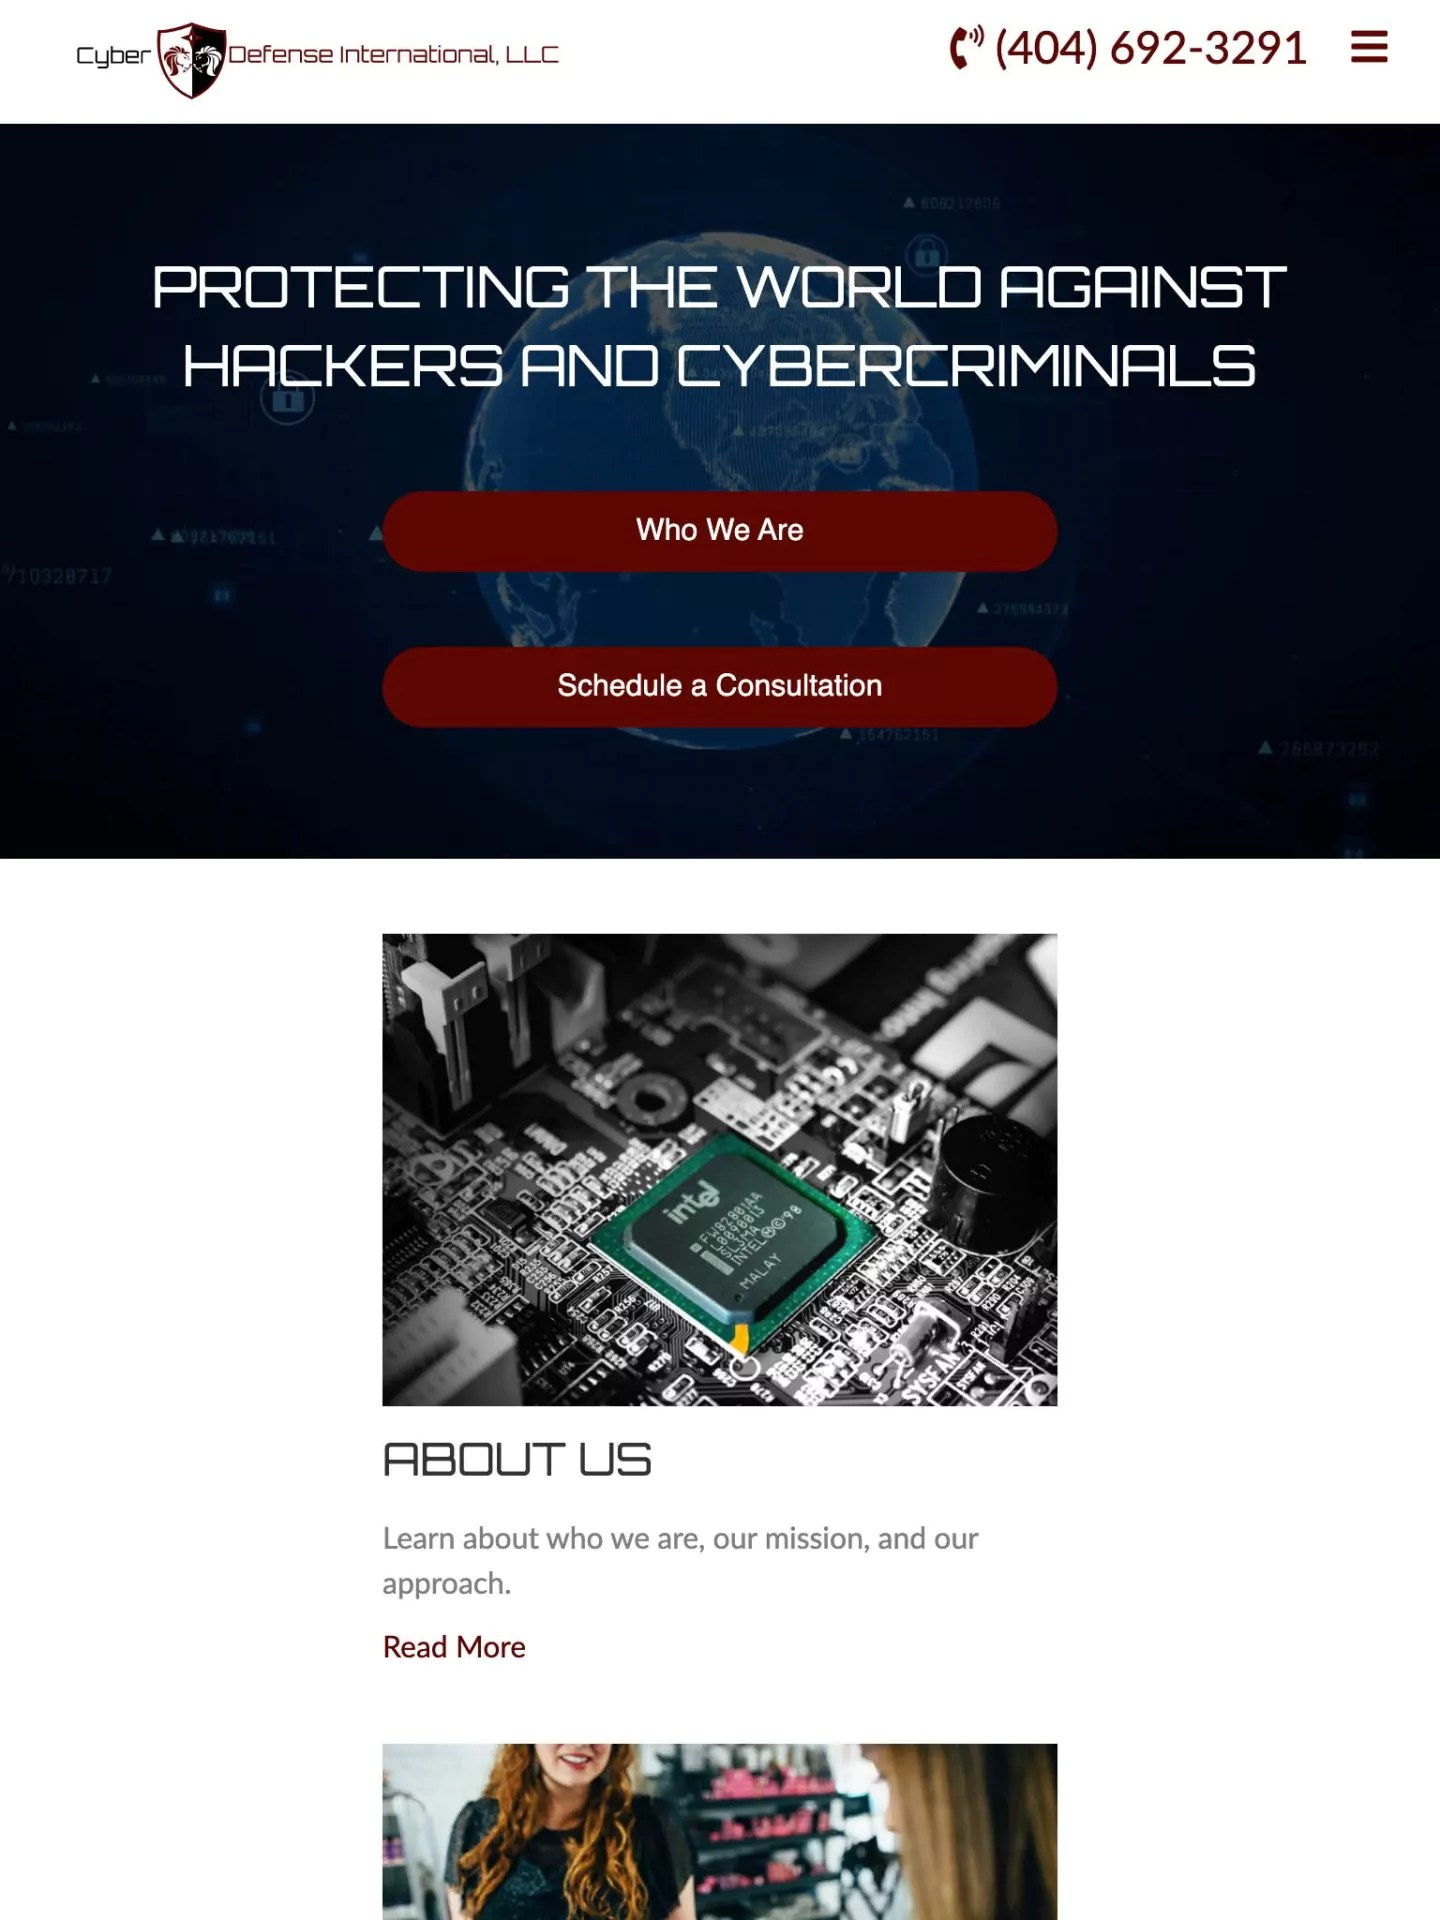 cyber-defense-atlanta-tablet-web-design-1